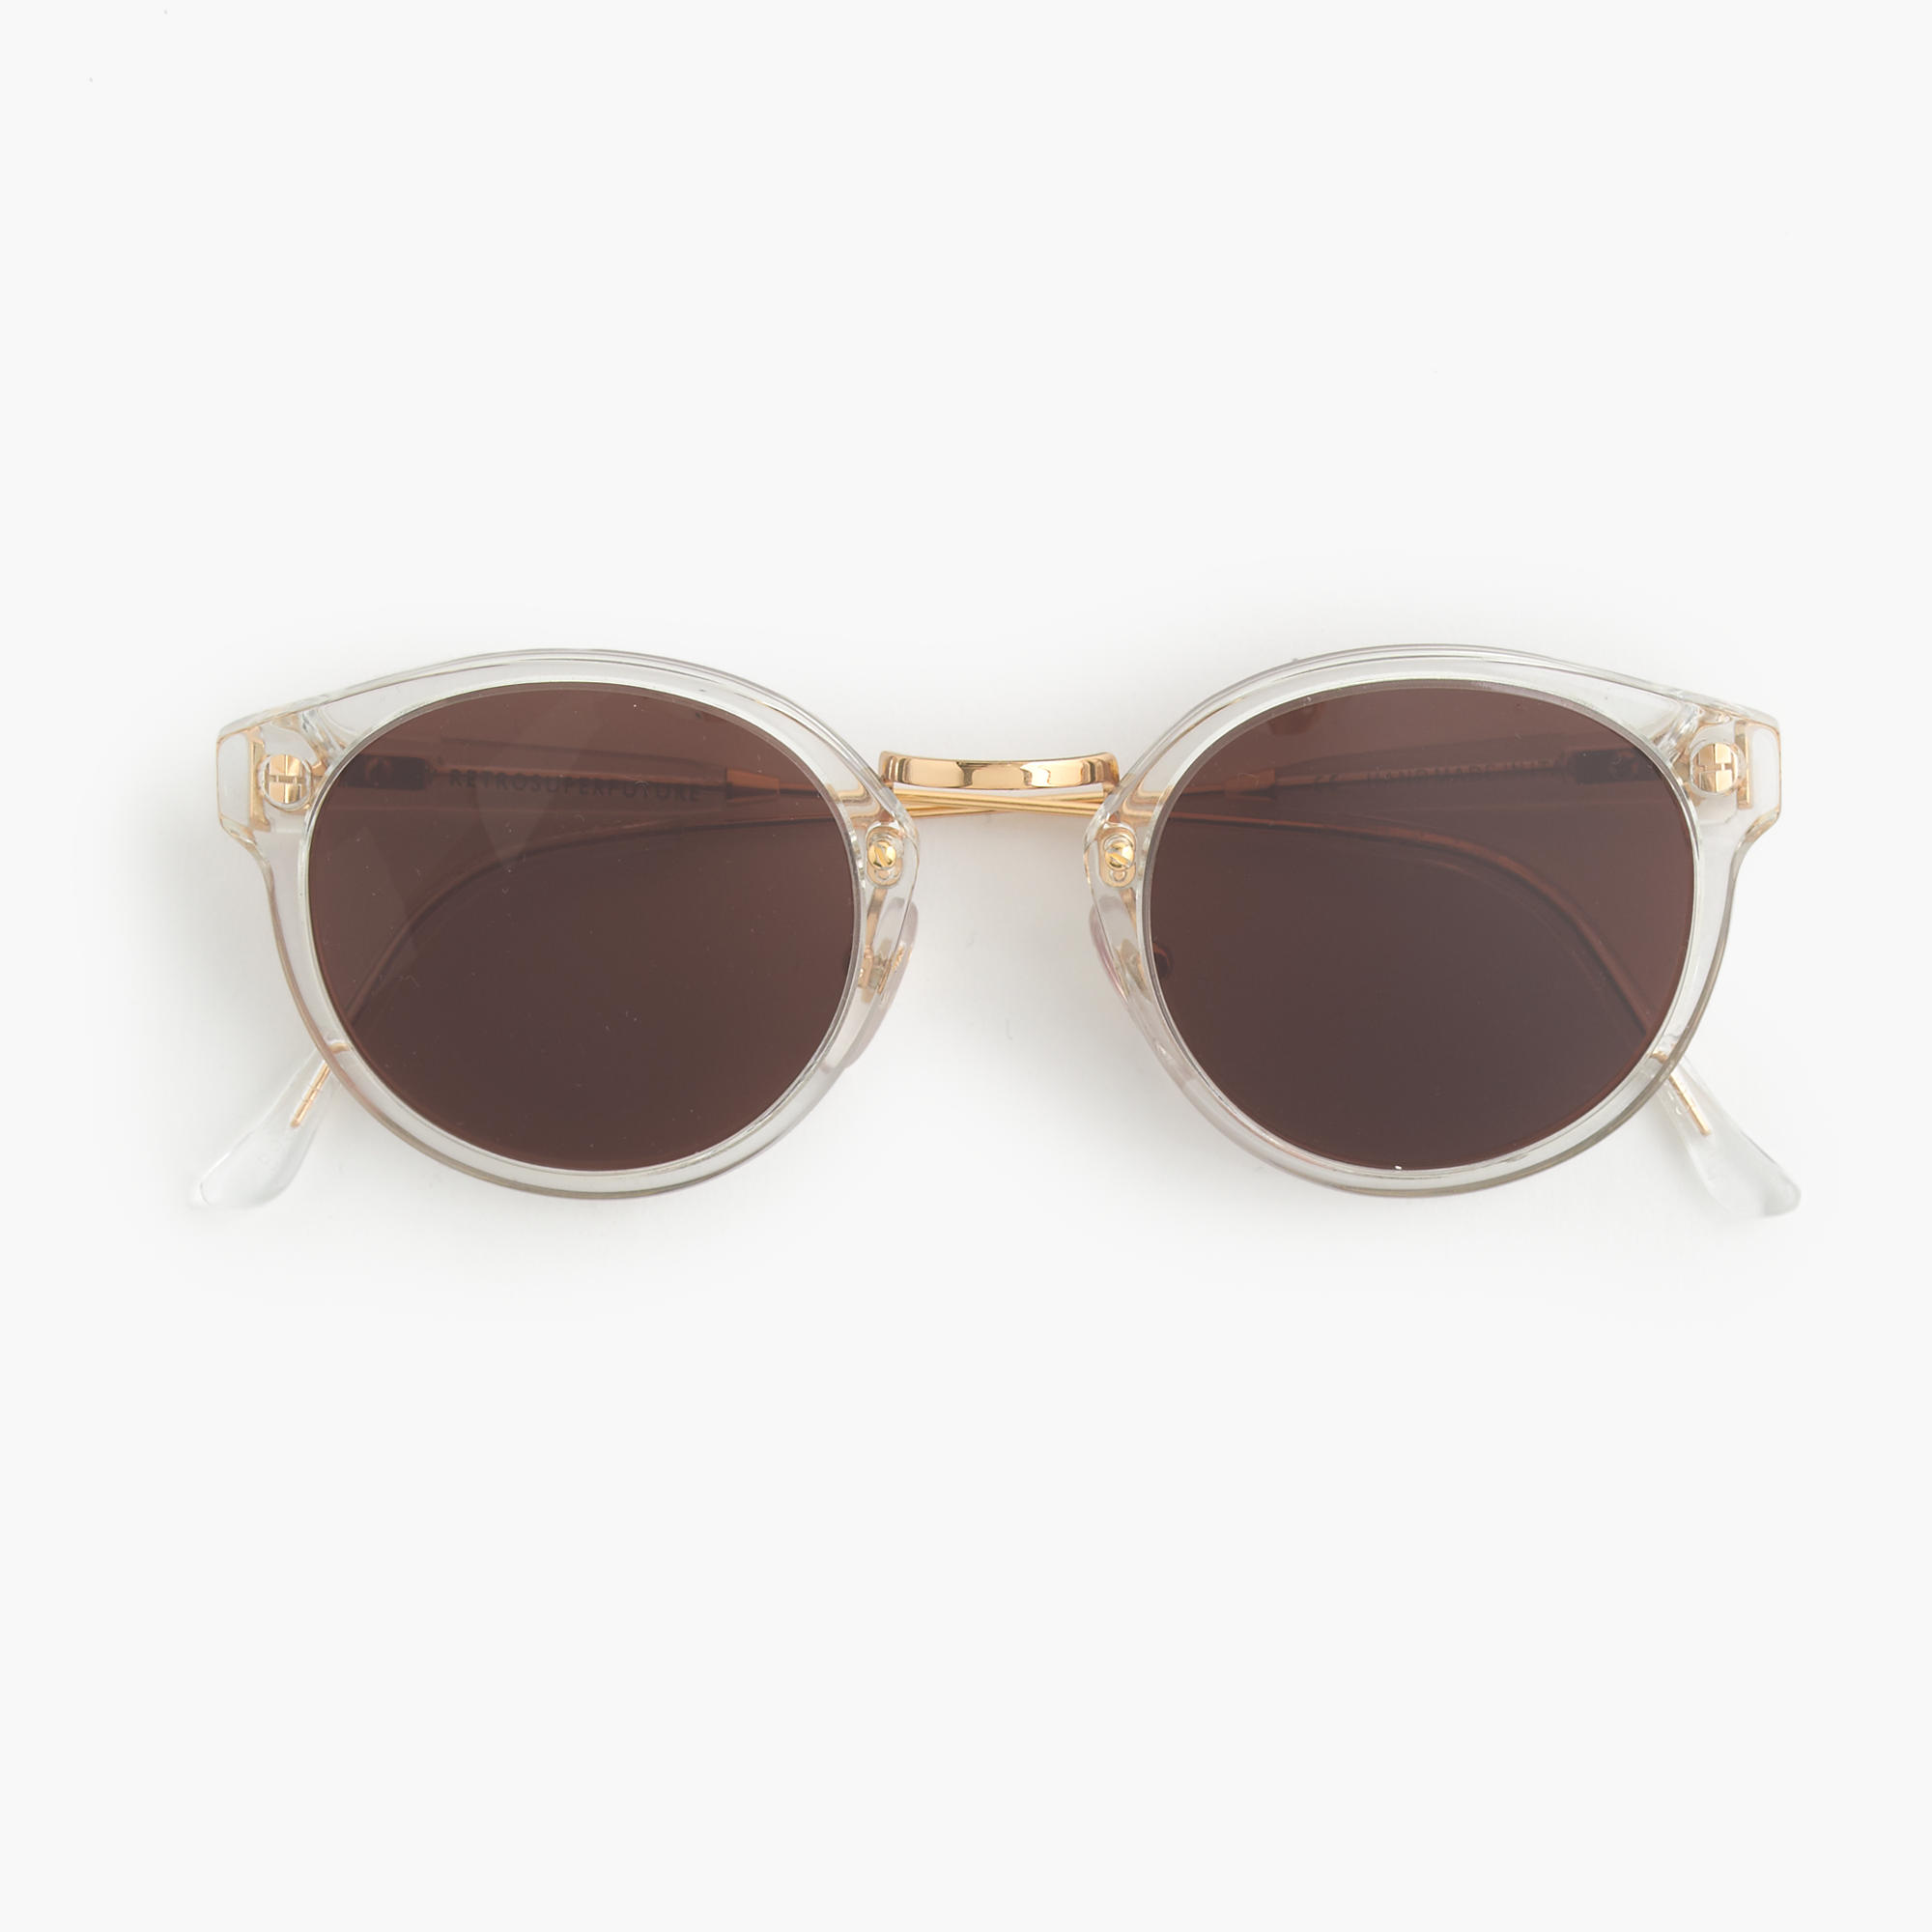 super retro sunglasses with clear frame